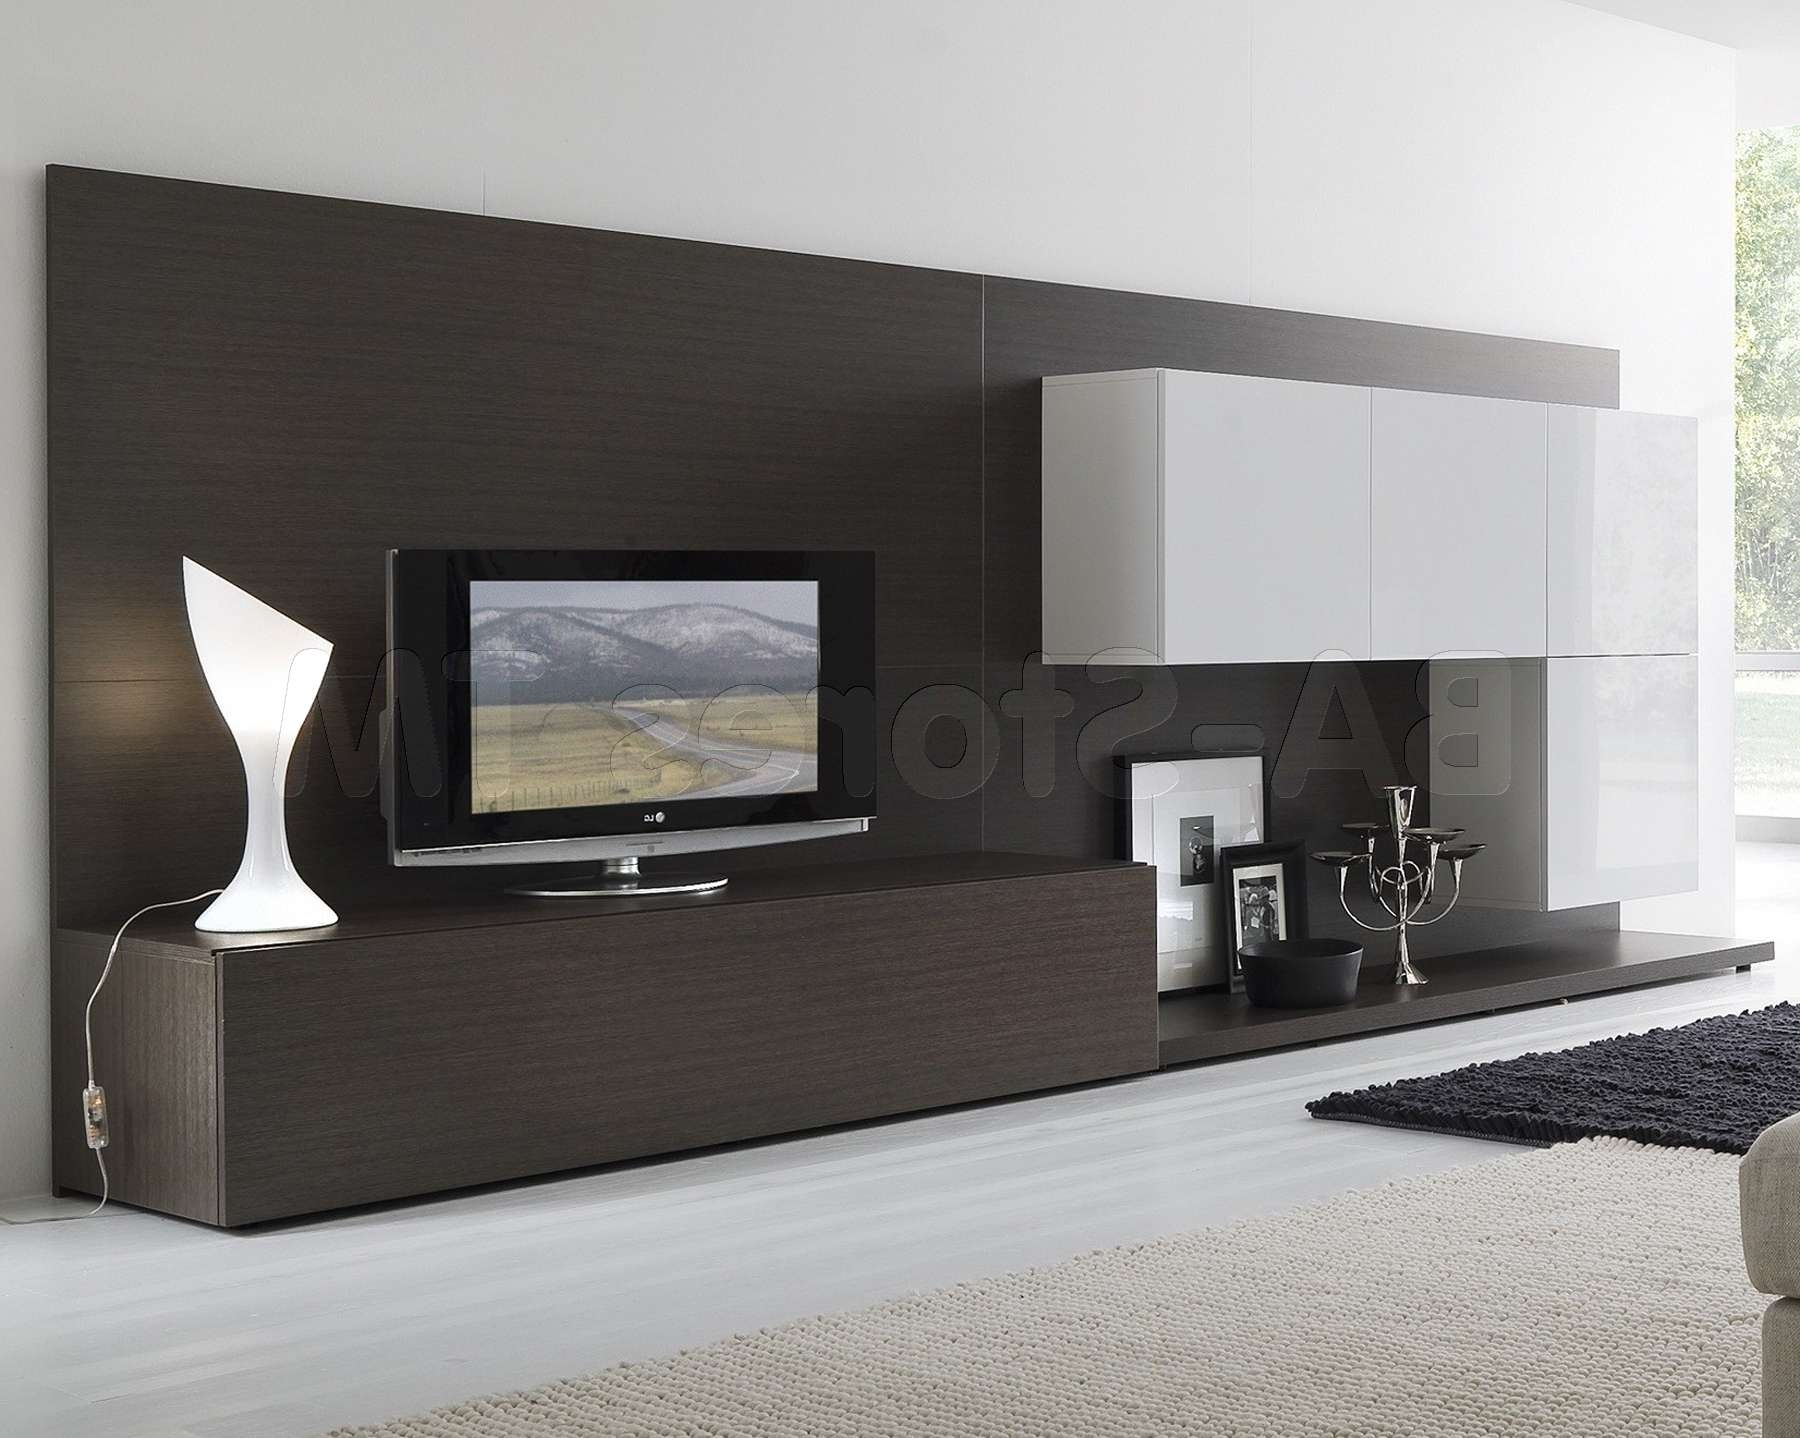 White And Black Wooden Cabinet With Rectangle Flat Screen Tv And Within Modern Tv Cabinets For Flat Screens (View 5 of 20)